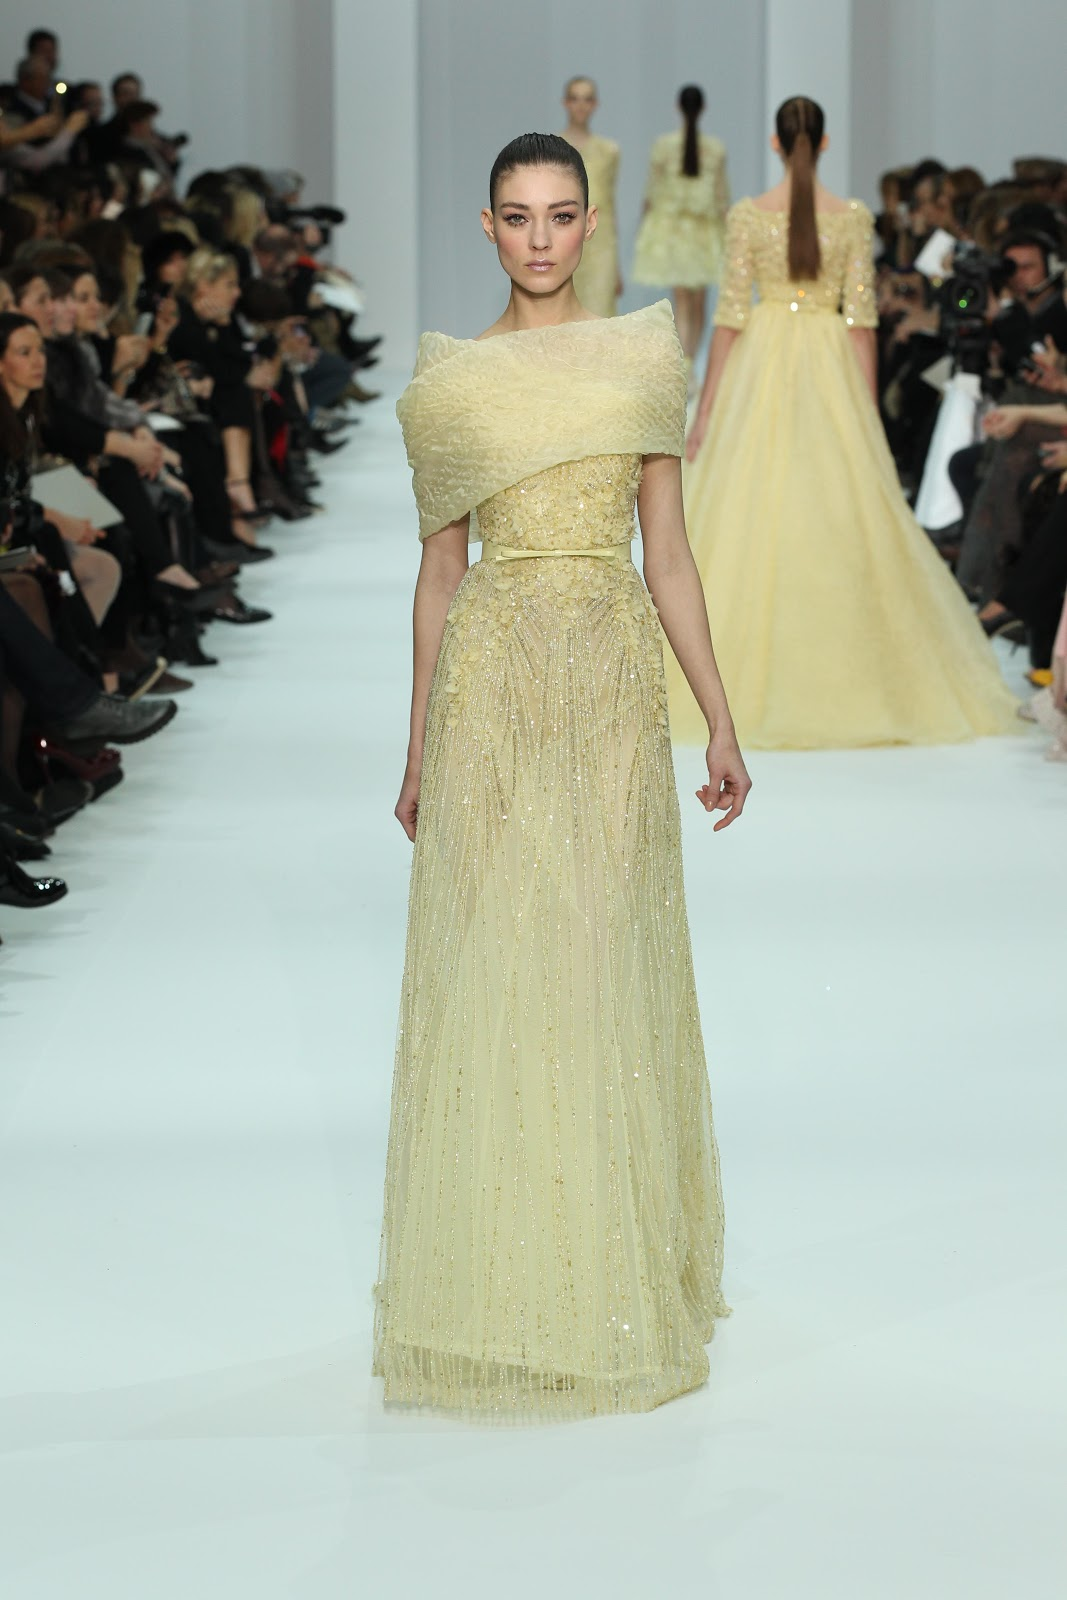 Descosido elie saab haute couture spring summer 2012 for Haute couture translation